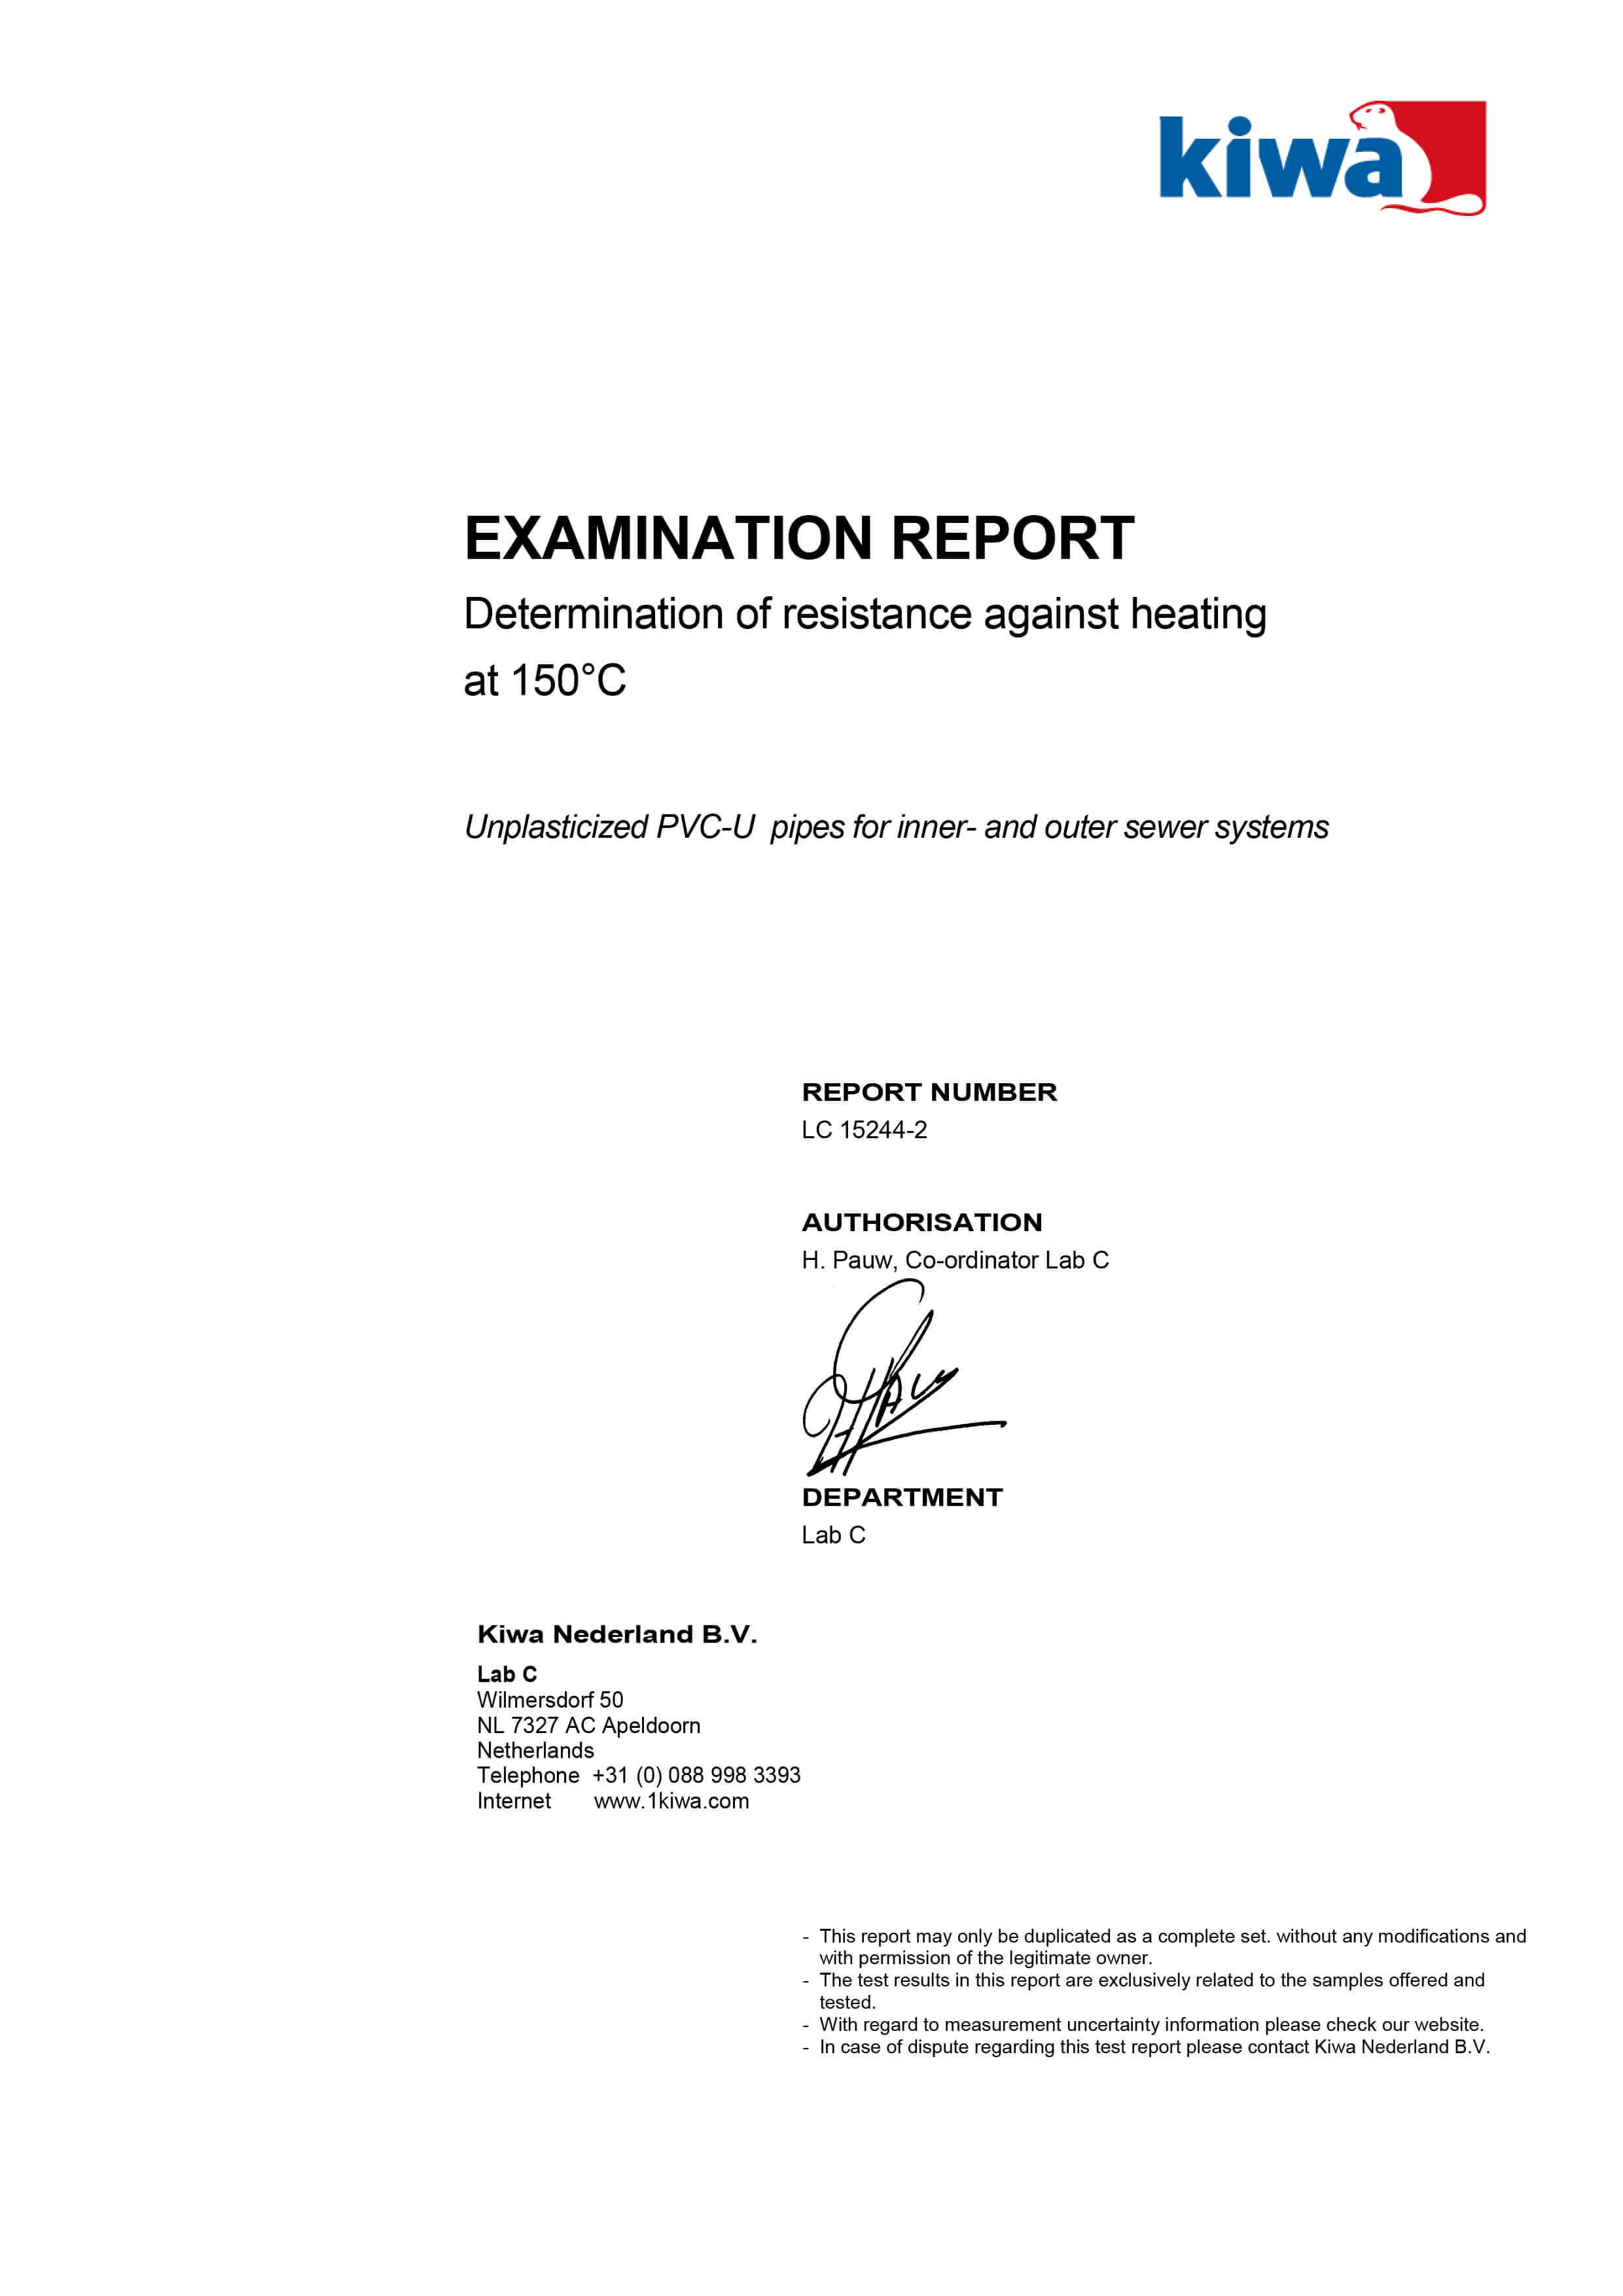 Haykal Plast Examination Report - Determination of resistance against heading at 150 degrees C - 2